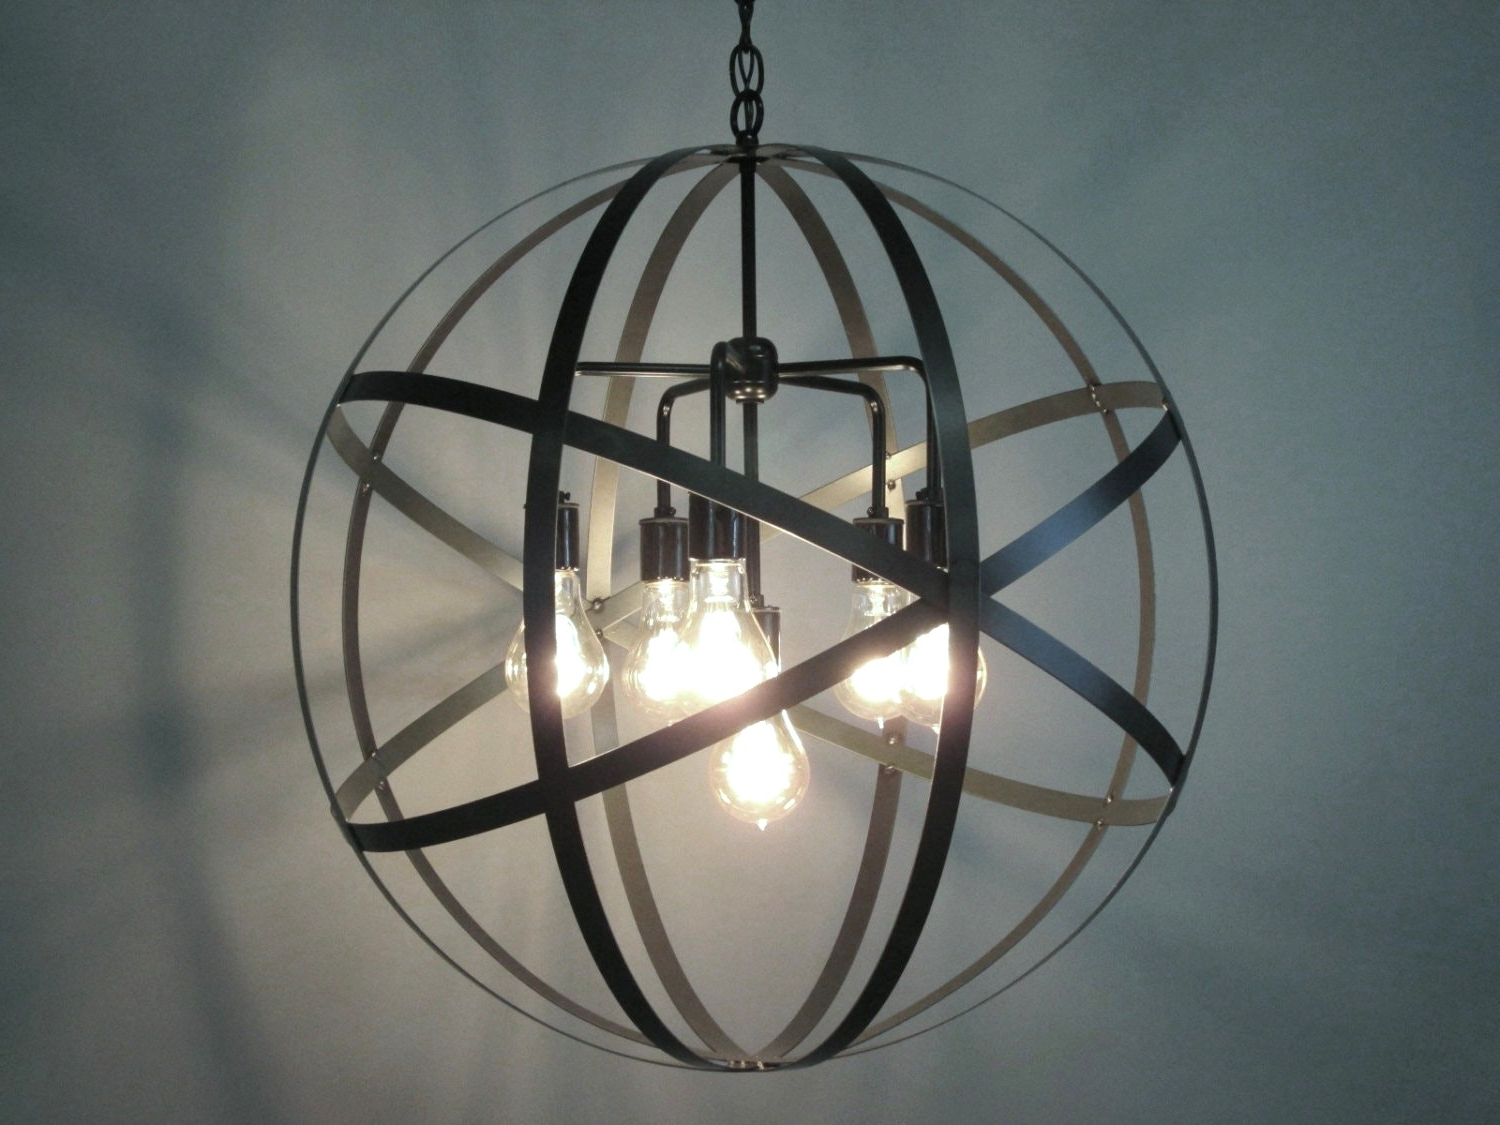 Industrial Orb Chandelier Ceiling Light Sphere 24 With Clear Glass Intended For Favorite Orb Chandeliers (View 4 of 20)